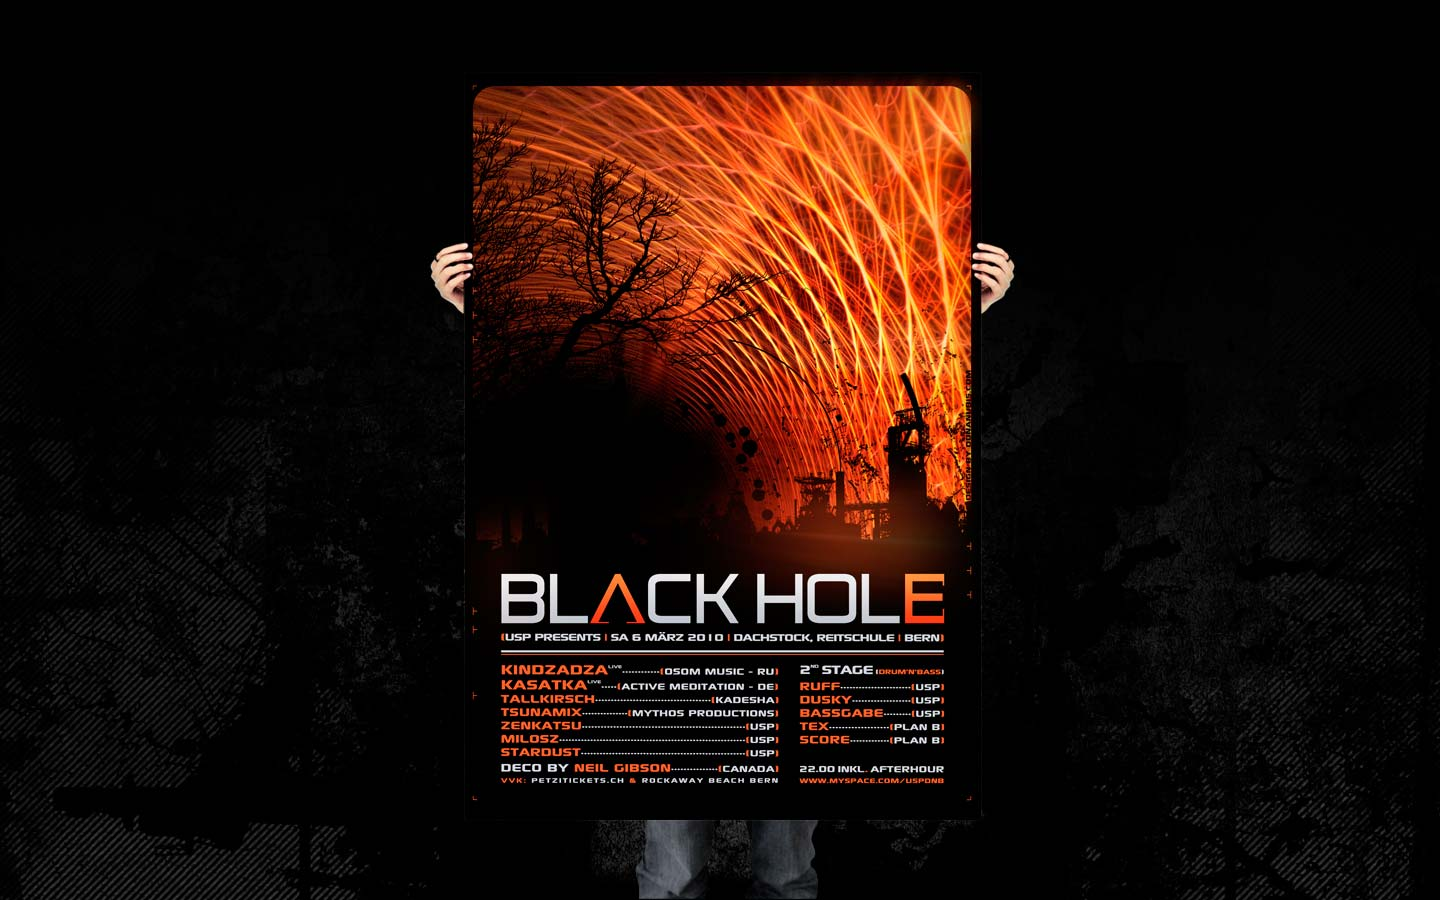 USP - Black Hole - Laurent Lemoigne - Donanubis - Don Anubis - Graphic Design - Underground Sound Promotion - Dachstock - Reitschule - Bern - Art - Music - Electronic - Party - Event - Flyer - Poster Alternative - Underground - Geneva - Switzerland - Dark Psytrance - Darkpsy - Trance - Fractal - 3d - Psychedelic - LSD - Hoffman - Drum and Bass - DNB - Industrial - Kindzadza / Osom Music - Kasatka / Active Meditation - Tallkirsch / Kadesha - Tsunamix / Mythos Production - Milosz - Stardust - Zenkatsu - Ruff - Dusky - Bassgabe - Tex / Plan B - Score / Plan B